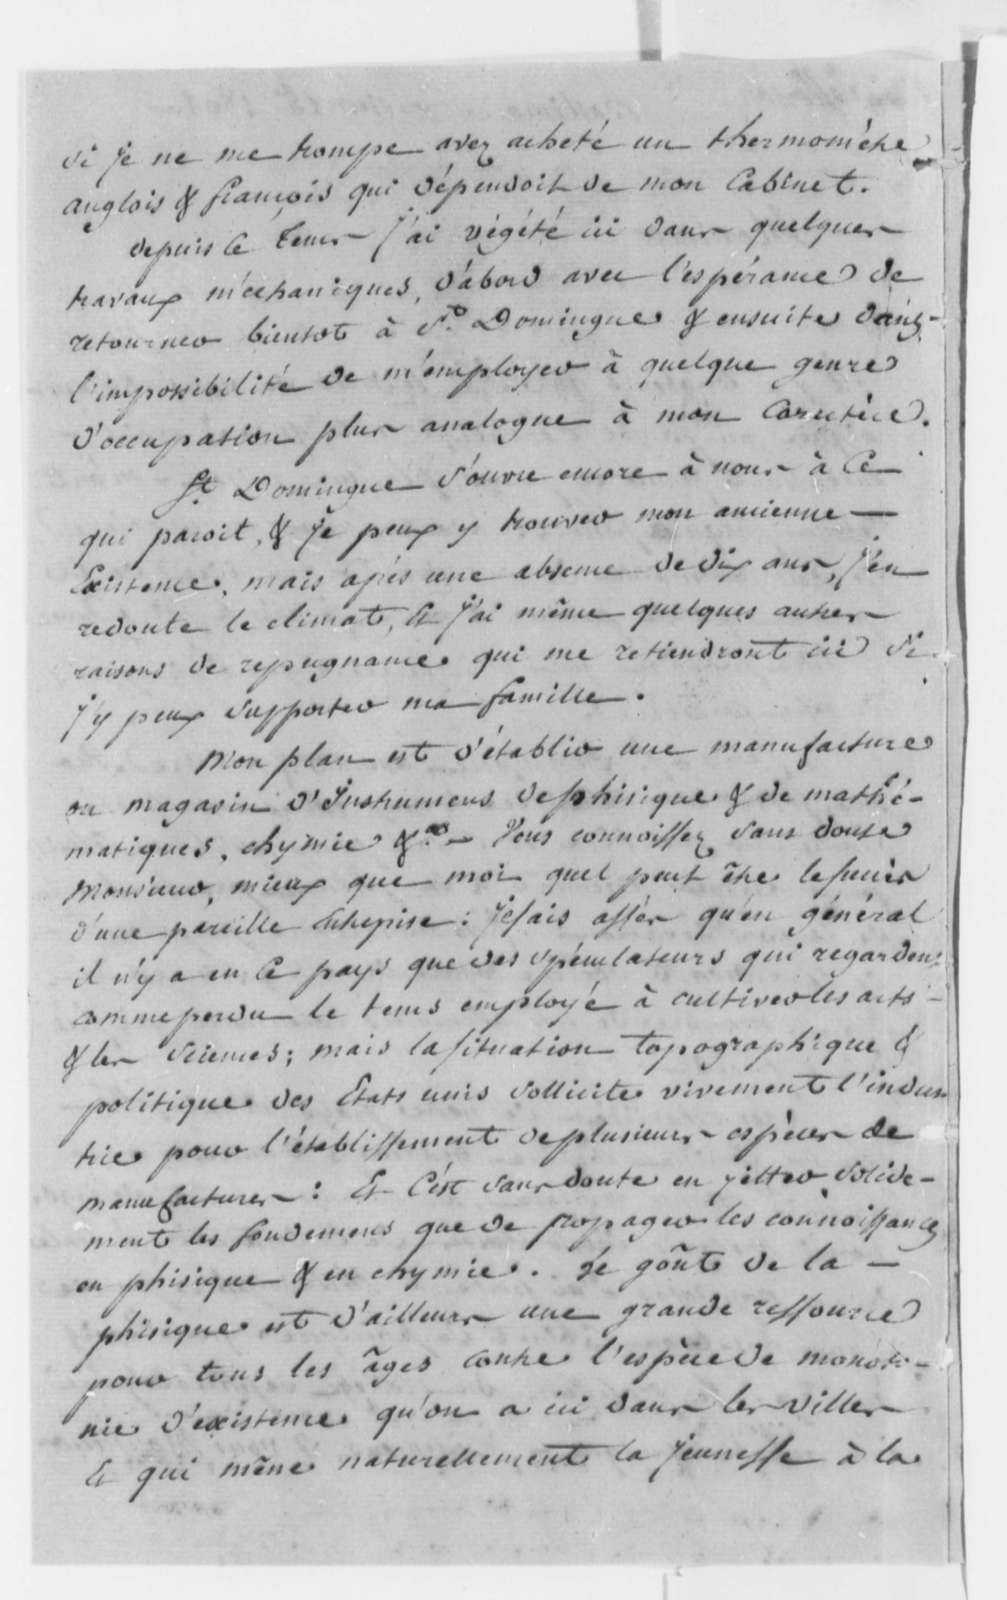 Lewis Geanty to Thomas Jefferson, January 15, 1802, in French